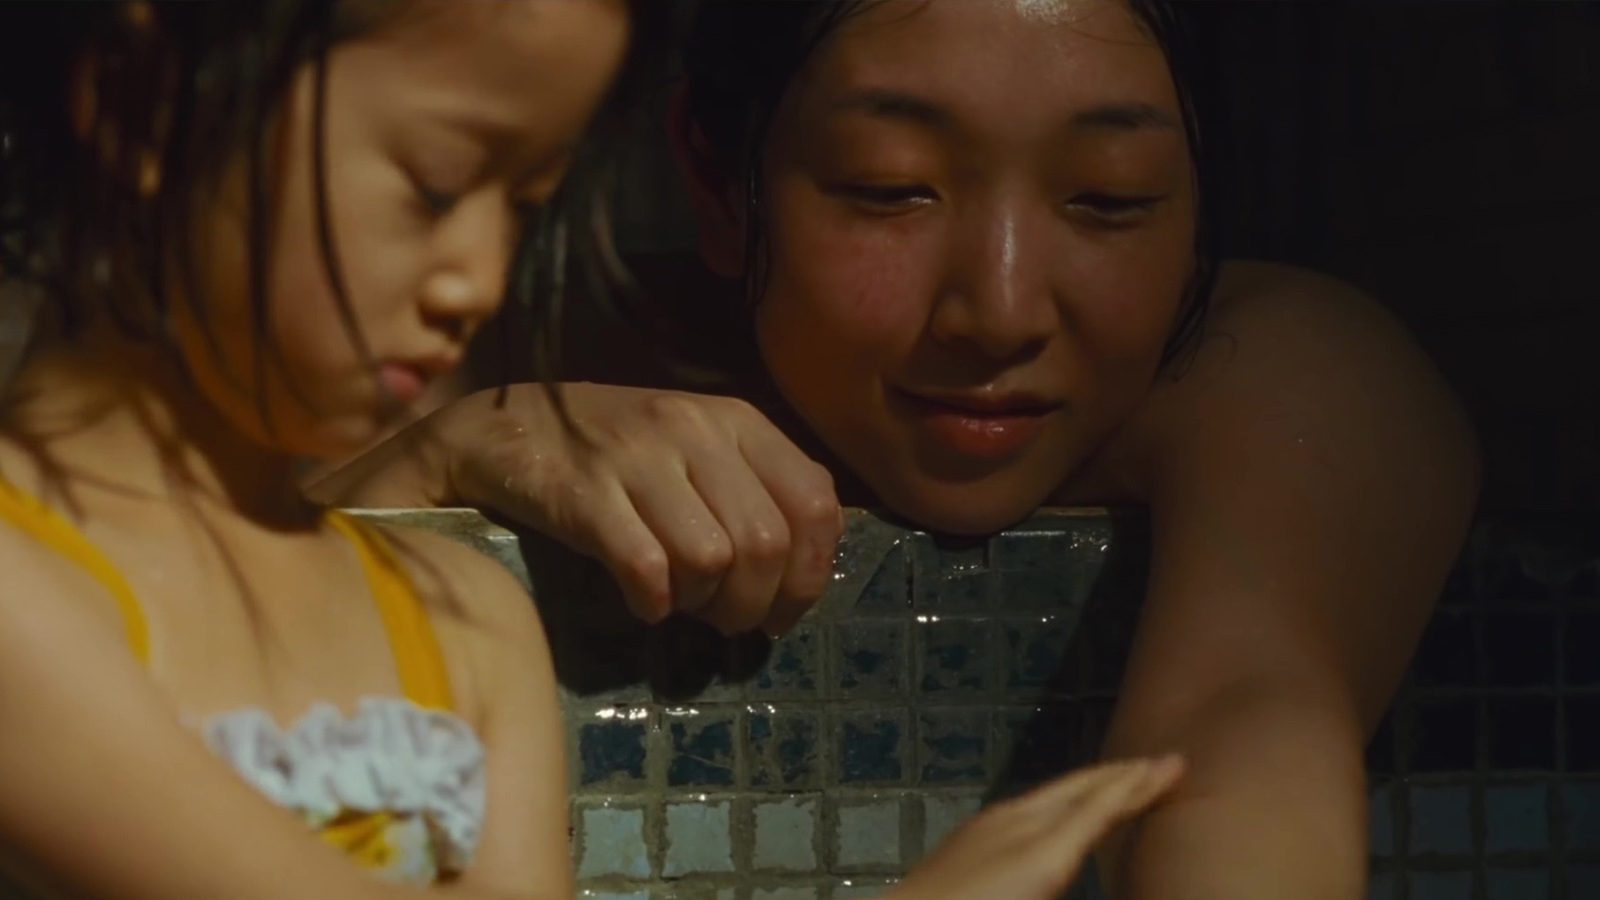 Sakura Ando, Shoplifters - Shoplifters received a Foreign Language Film nomination, but the film wouldn't even be in the conversation without Ando's moving performance. Her work is some of the best of the year.